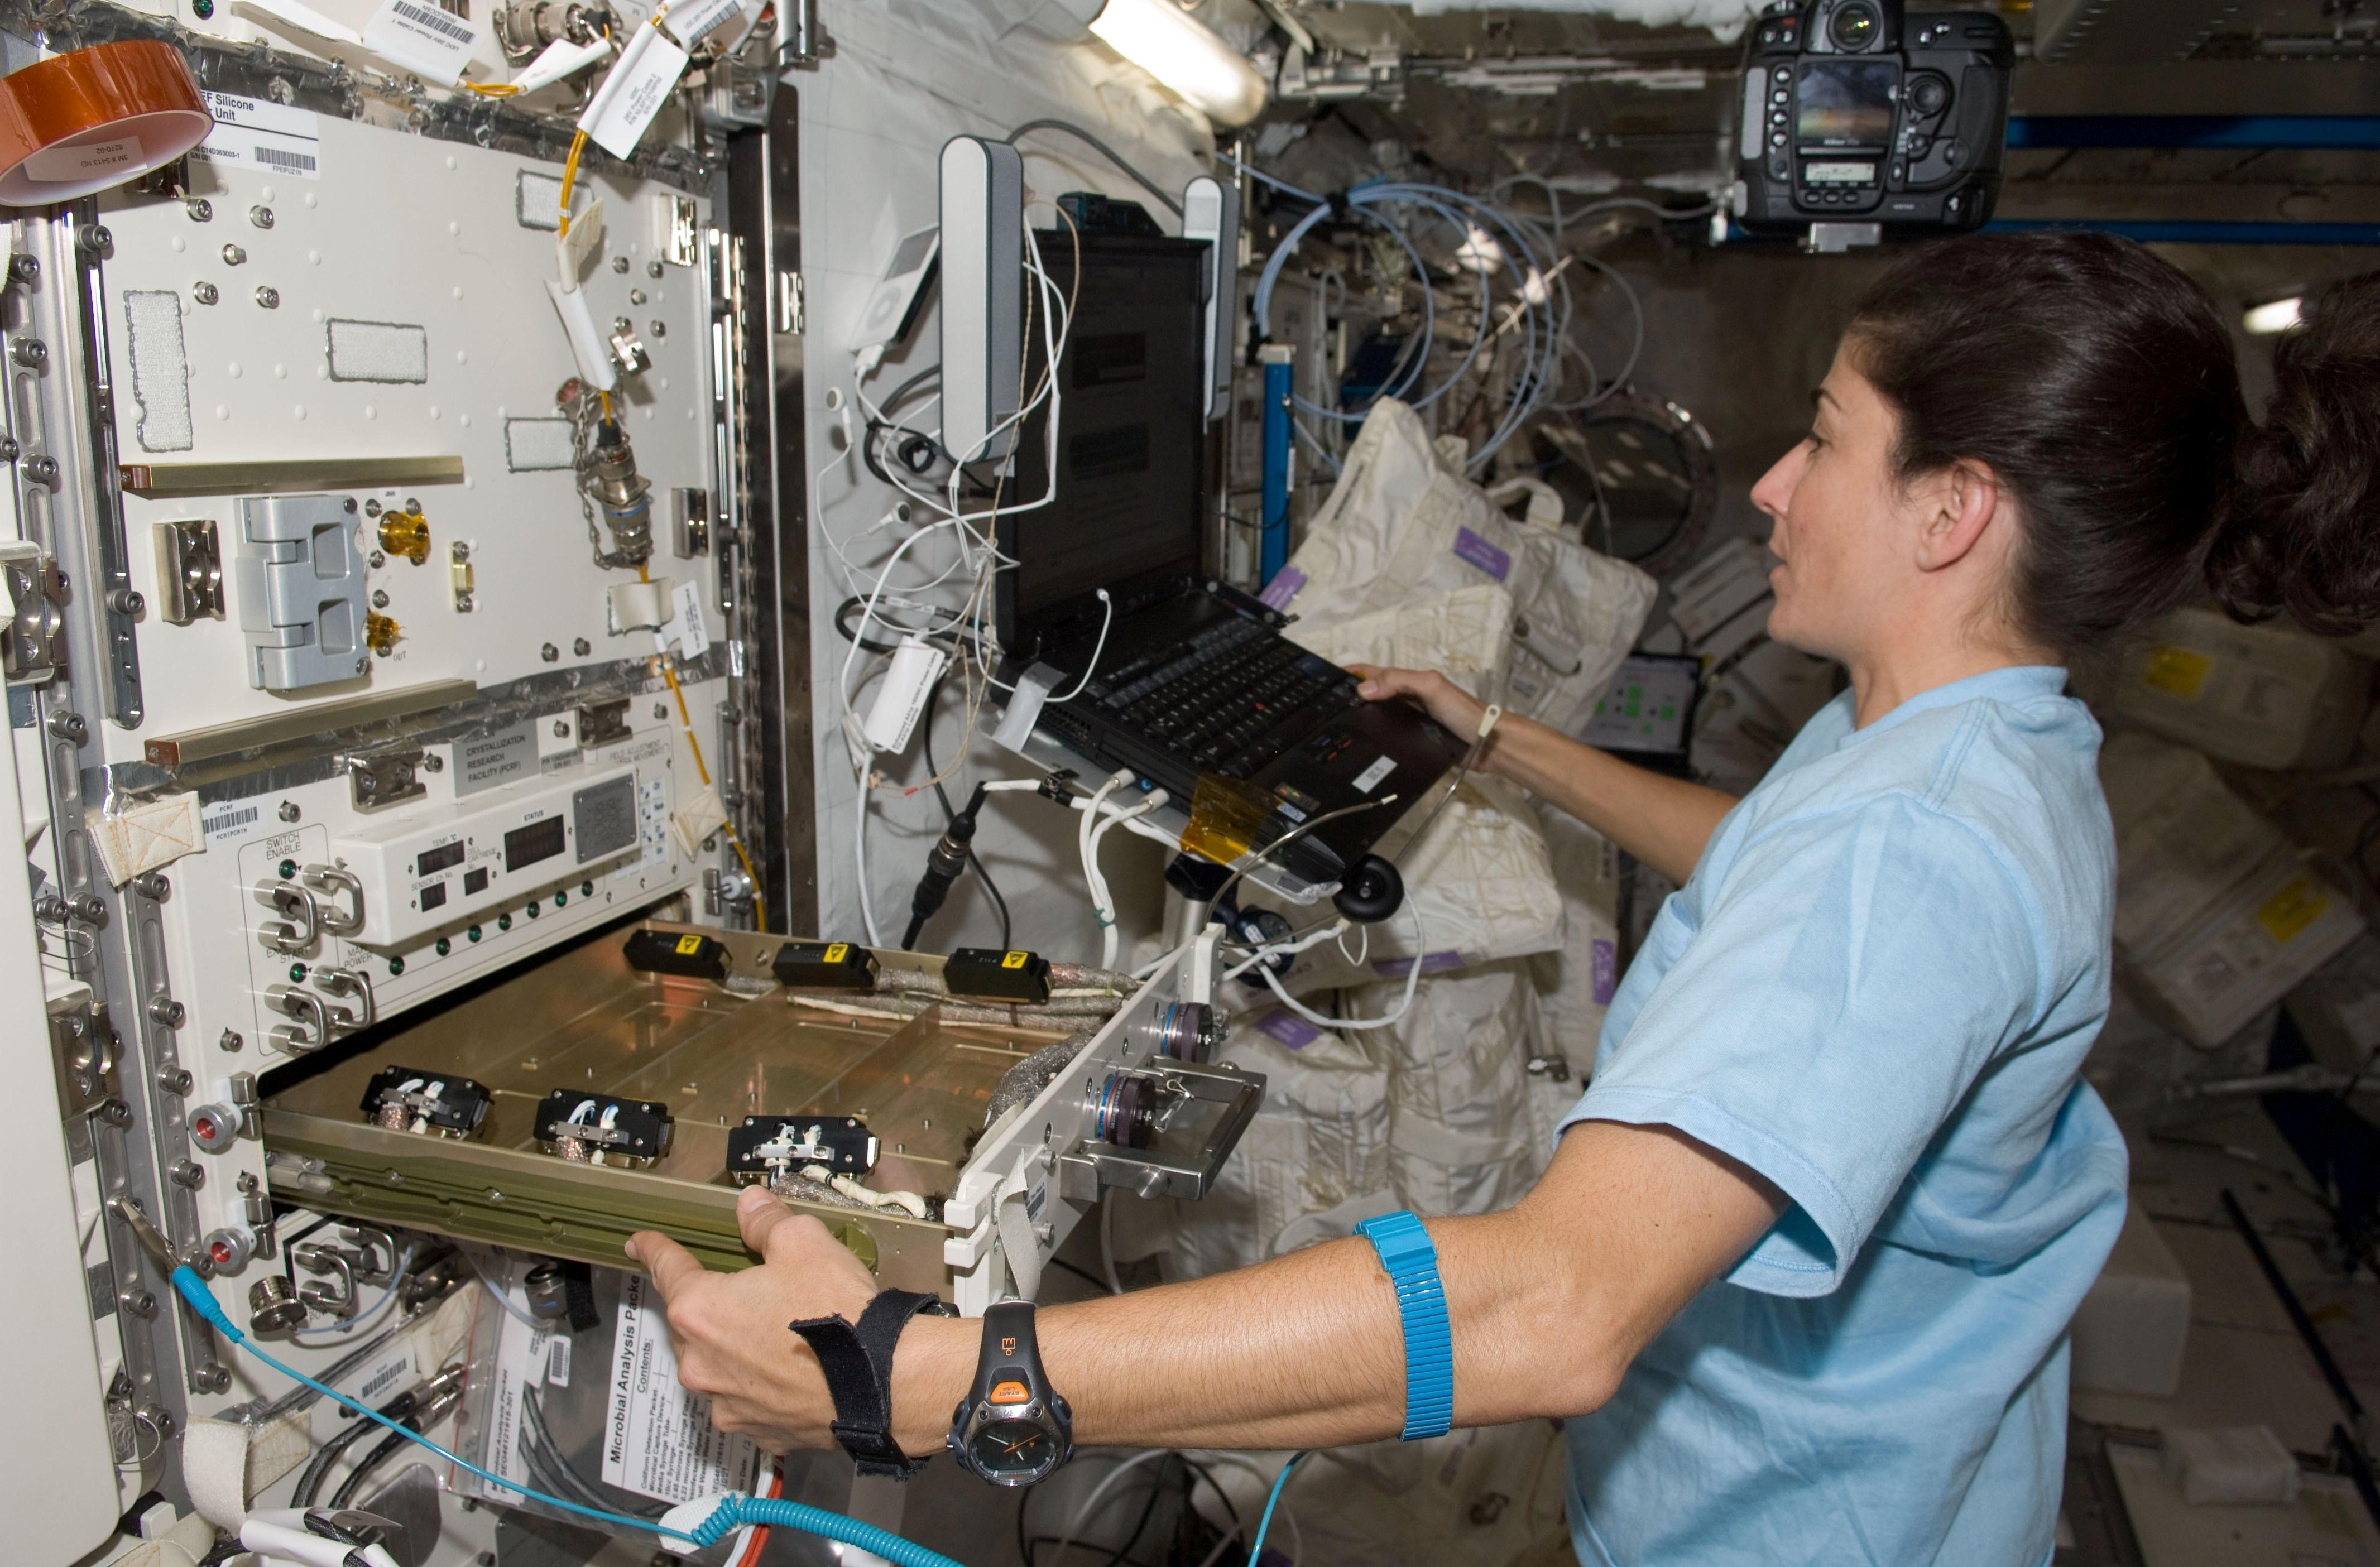 space station research paper Check out these 5 awesome college essay writing tips from professional authors: why engineering essays dumpster diving essay summary of globalization juvenile delinquency research paper reporting deckblatt essay uni leipzig erasmus republican essay texting and driving essay high school what's the word dissertation mean university essay.